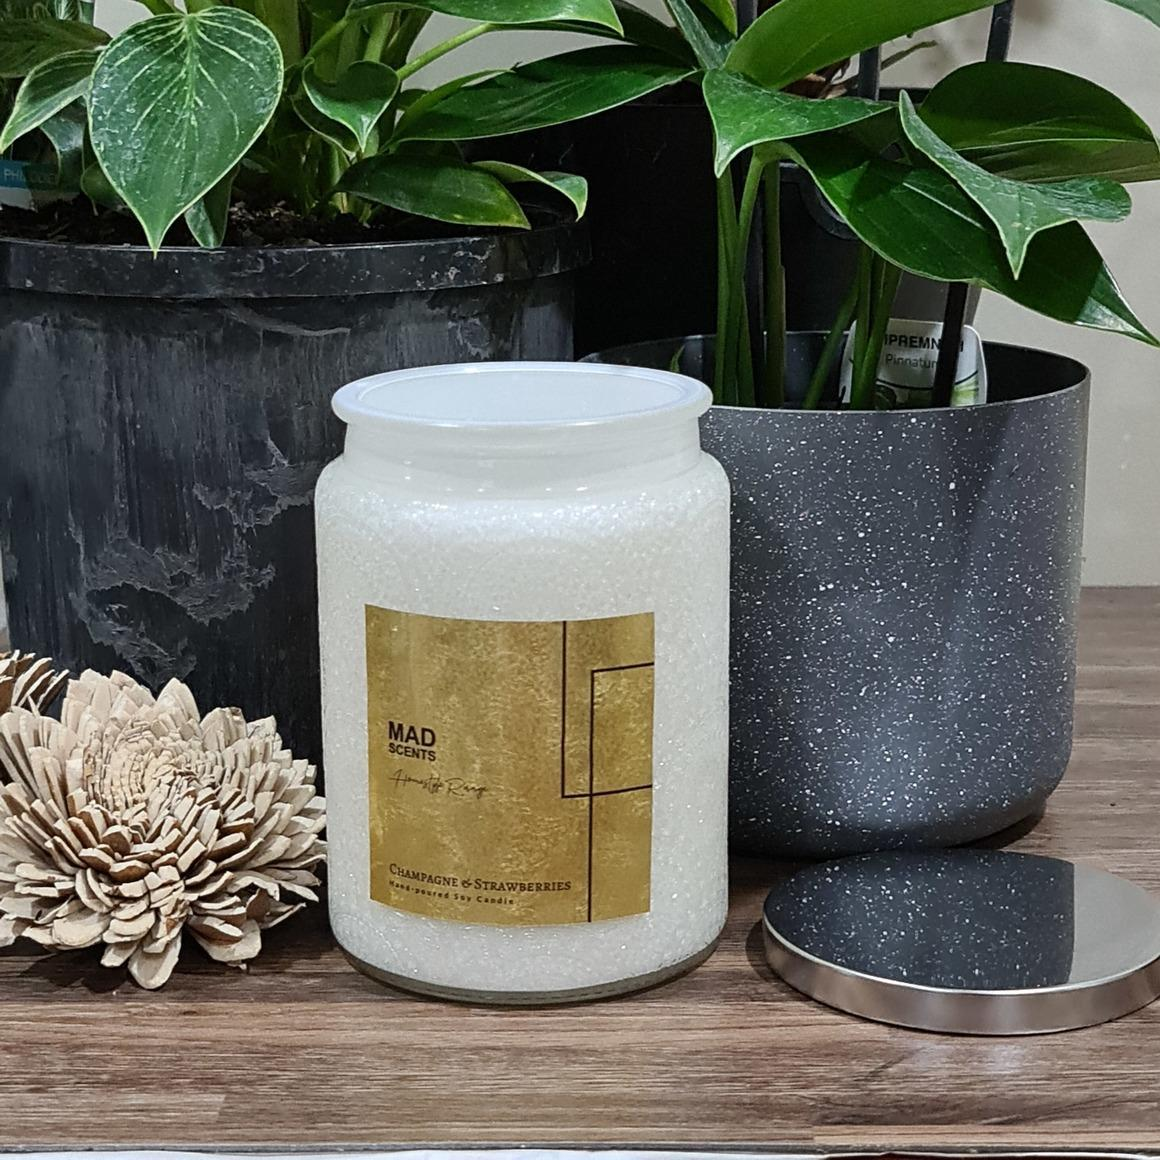 Champagne & Strawberries Wood Wick Candle | Trada Marketplace